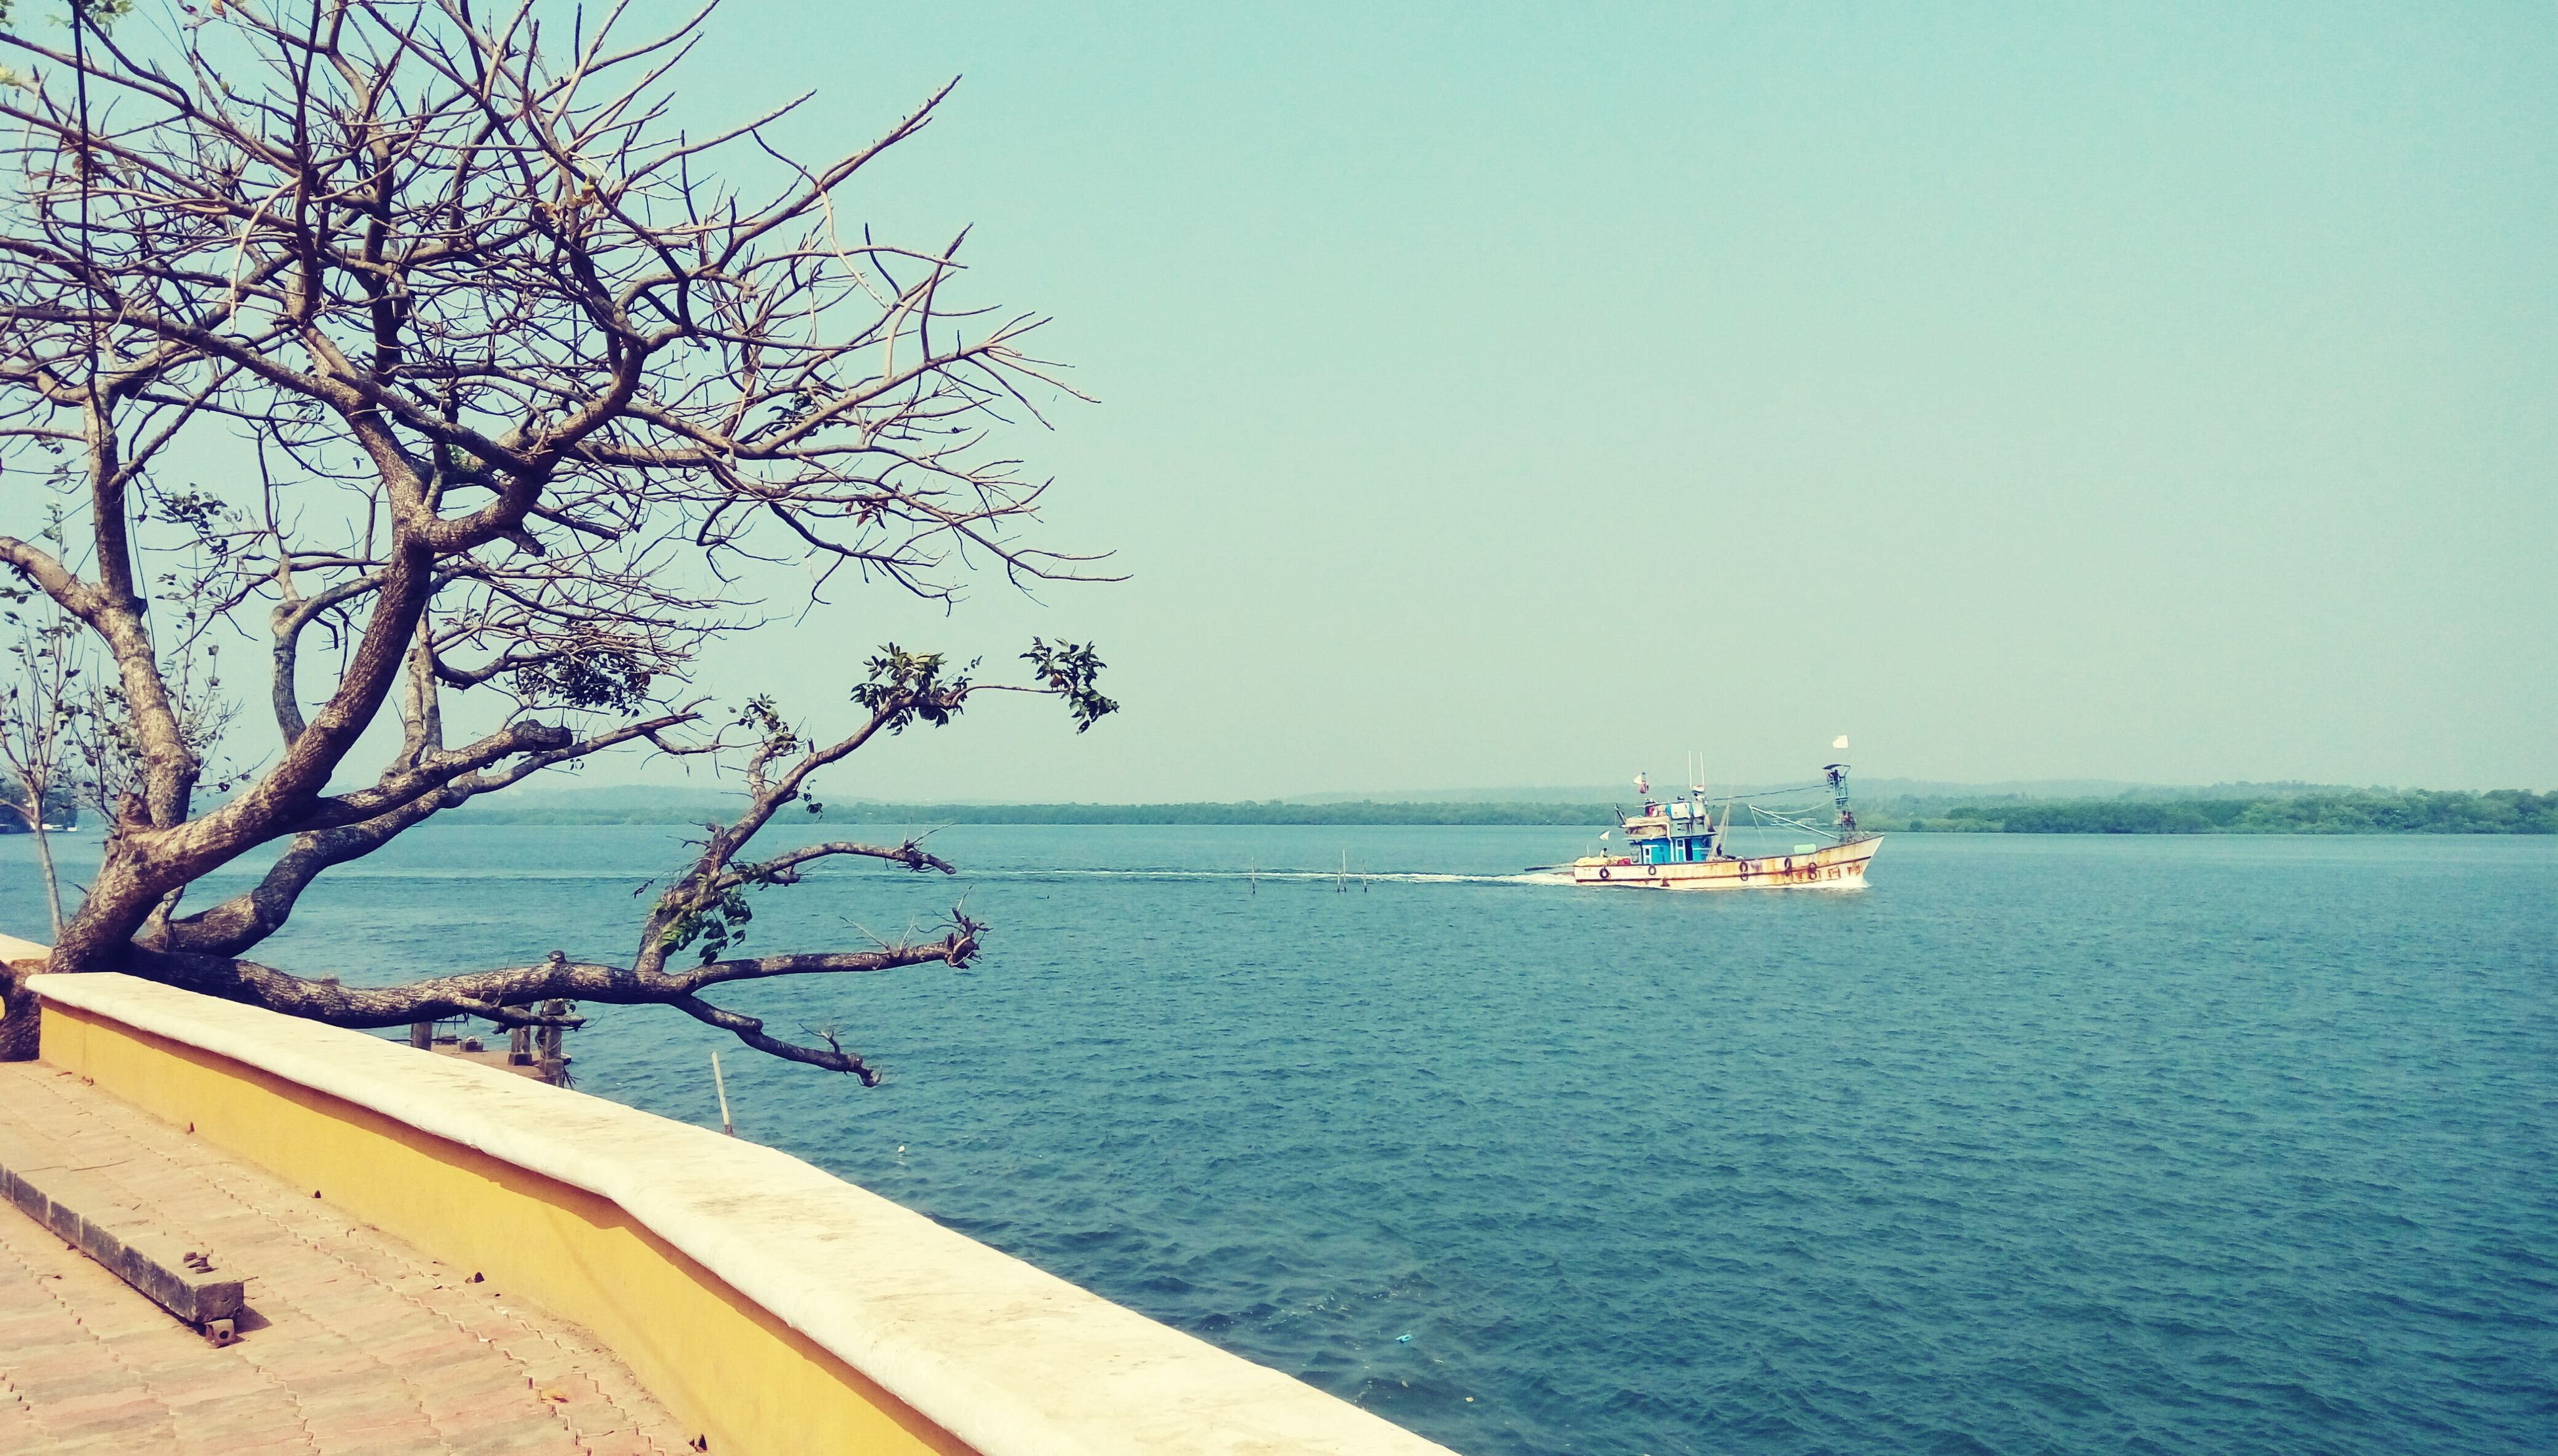 nautical vessel, water, transportation, boat, clear sky, sea, mode of transport, horizon over water, tranquility, tranquil scene, nature, copy space, moored, beauty in nature, blue, scenics, tree, day, beach, travel